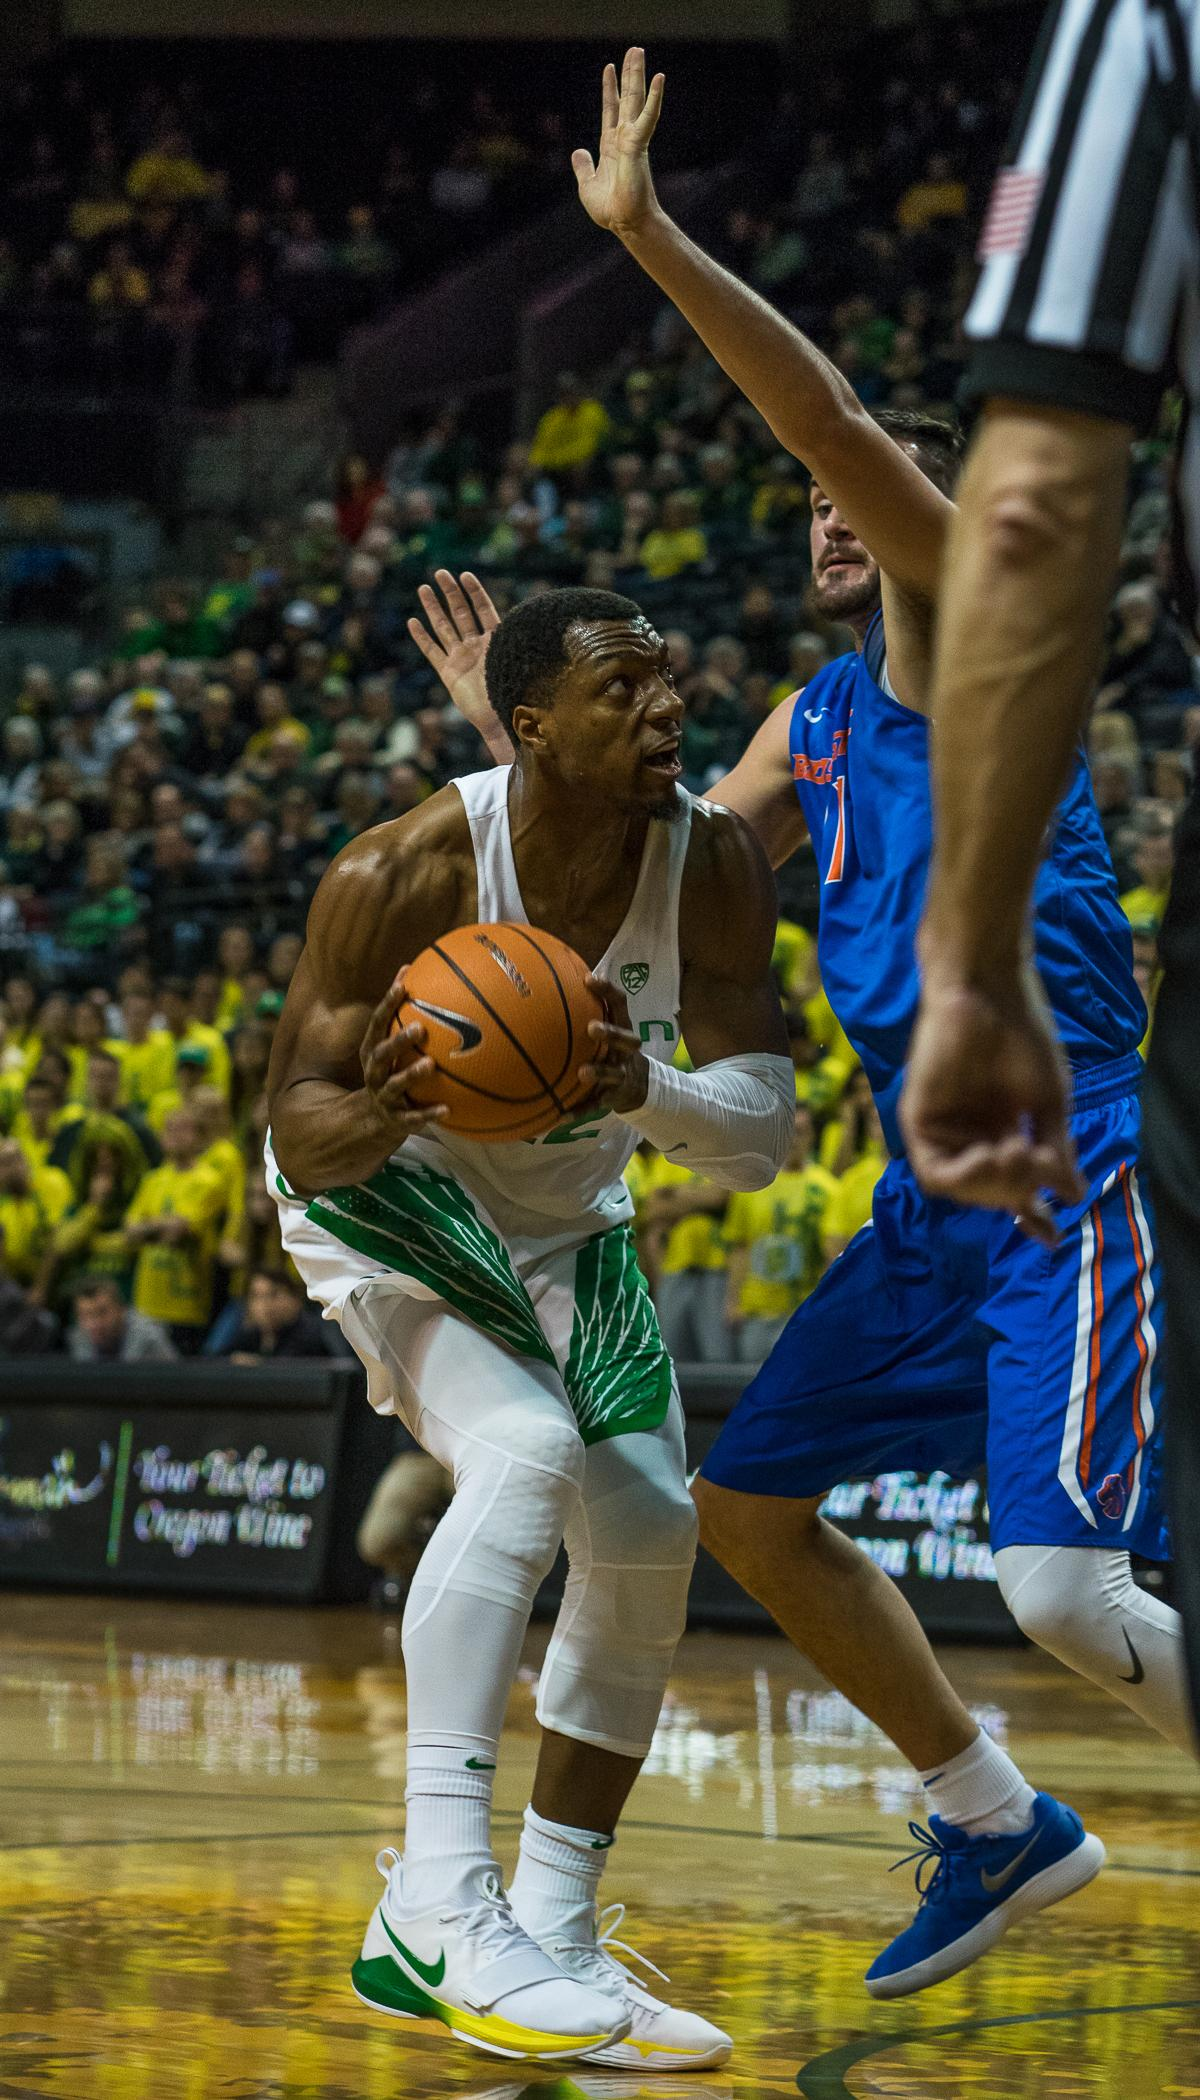 The University of Oregon's MiKyle McIntosh (#22) looks for an opening in Boise State Bronco Zach Haney's (#11) defense. The Boise State Broncos defeated the University of Oregon Ducks 73 – 70 at Matthew Knight Arena in Eugene, Ore., on December 1, 2017. Photo by Kit MacAvoy, Oregon News Lab